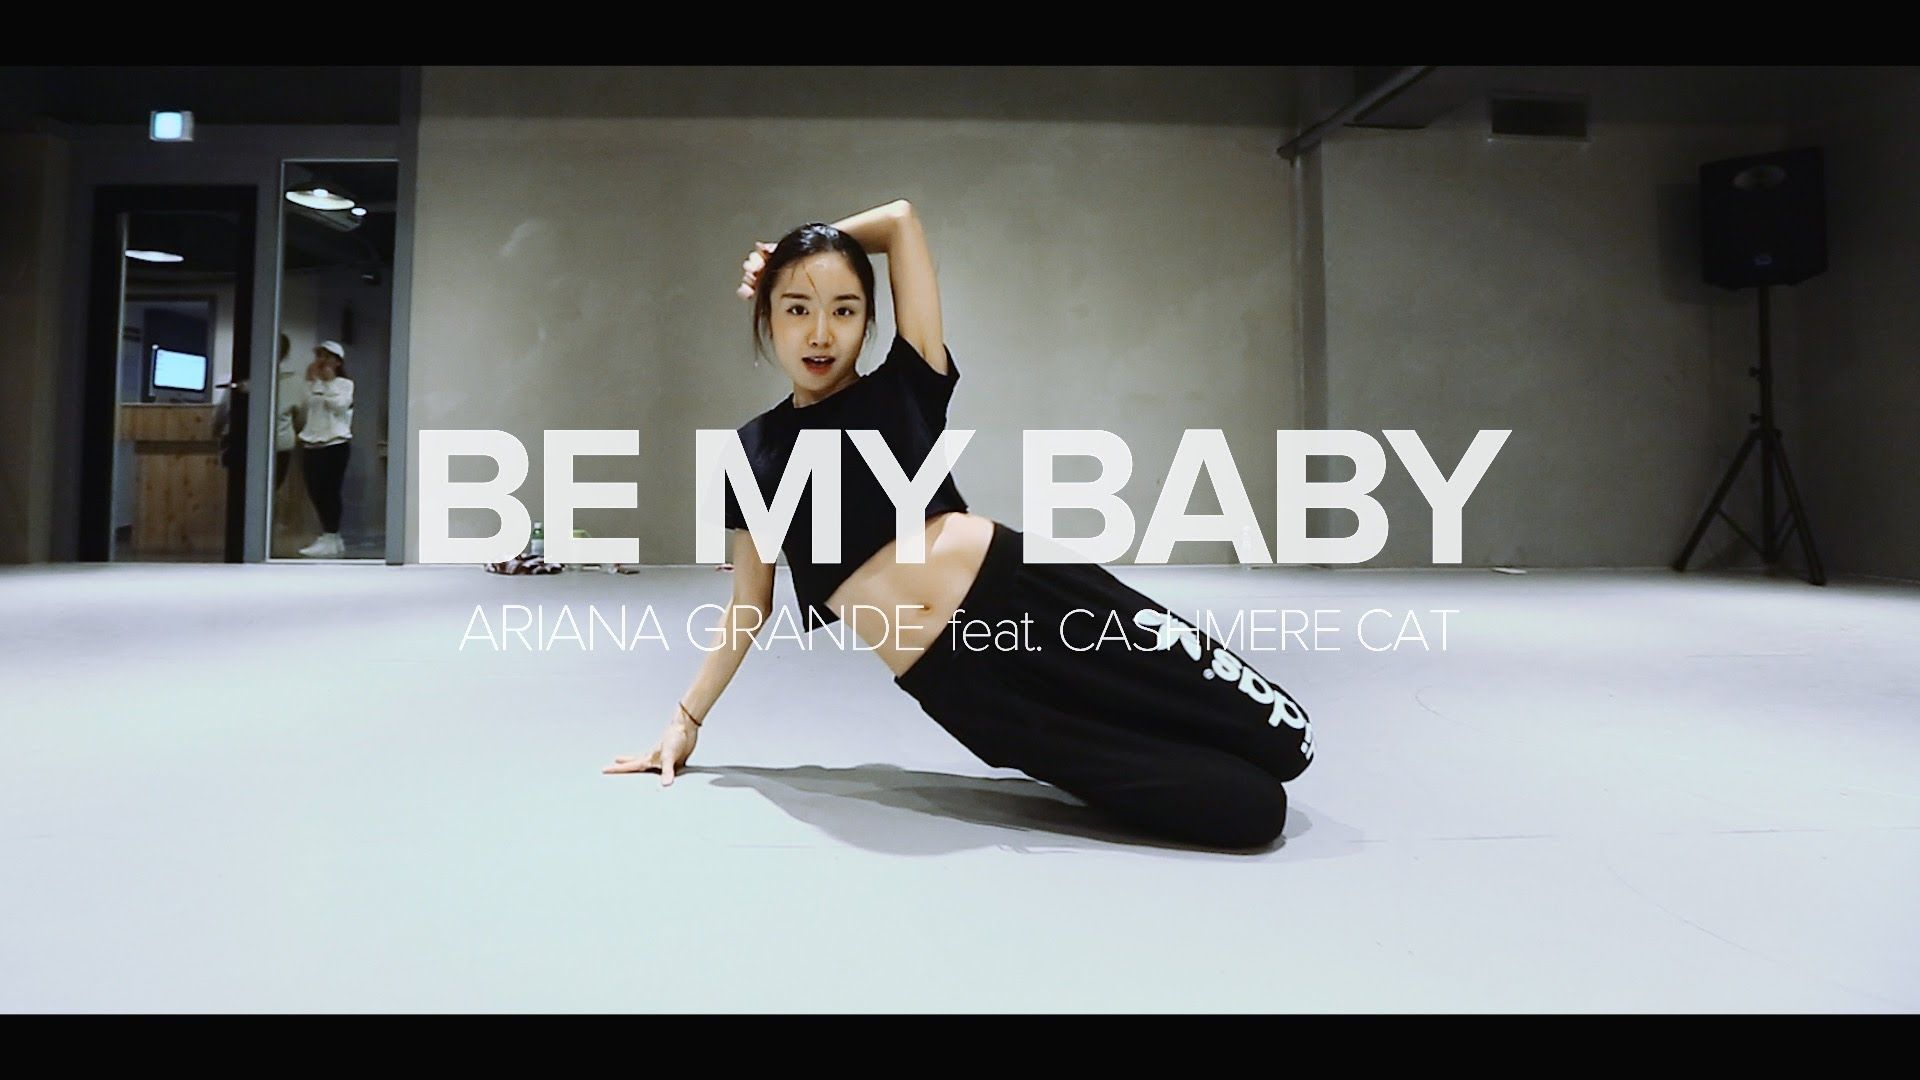 May J Lee Teaches Choreography To Be My Baby By Ariana Grande